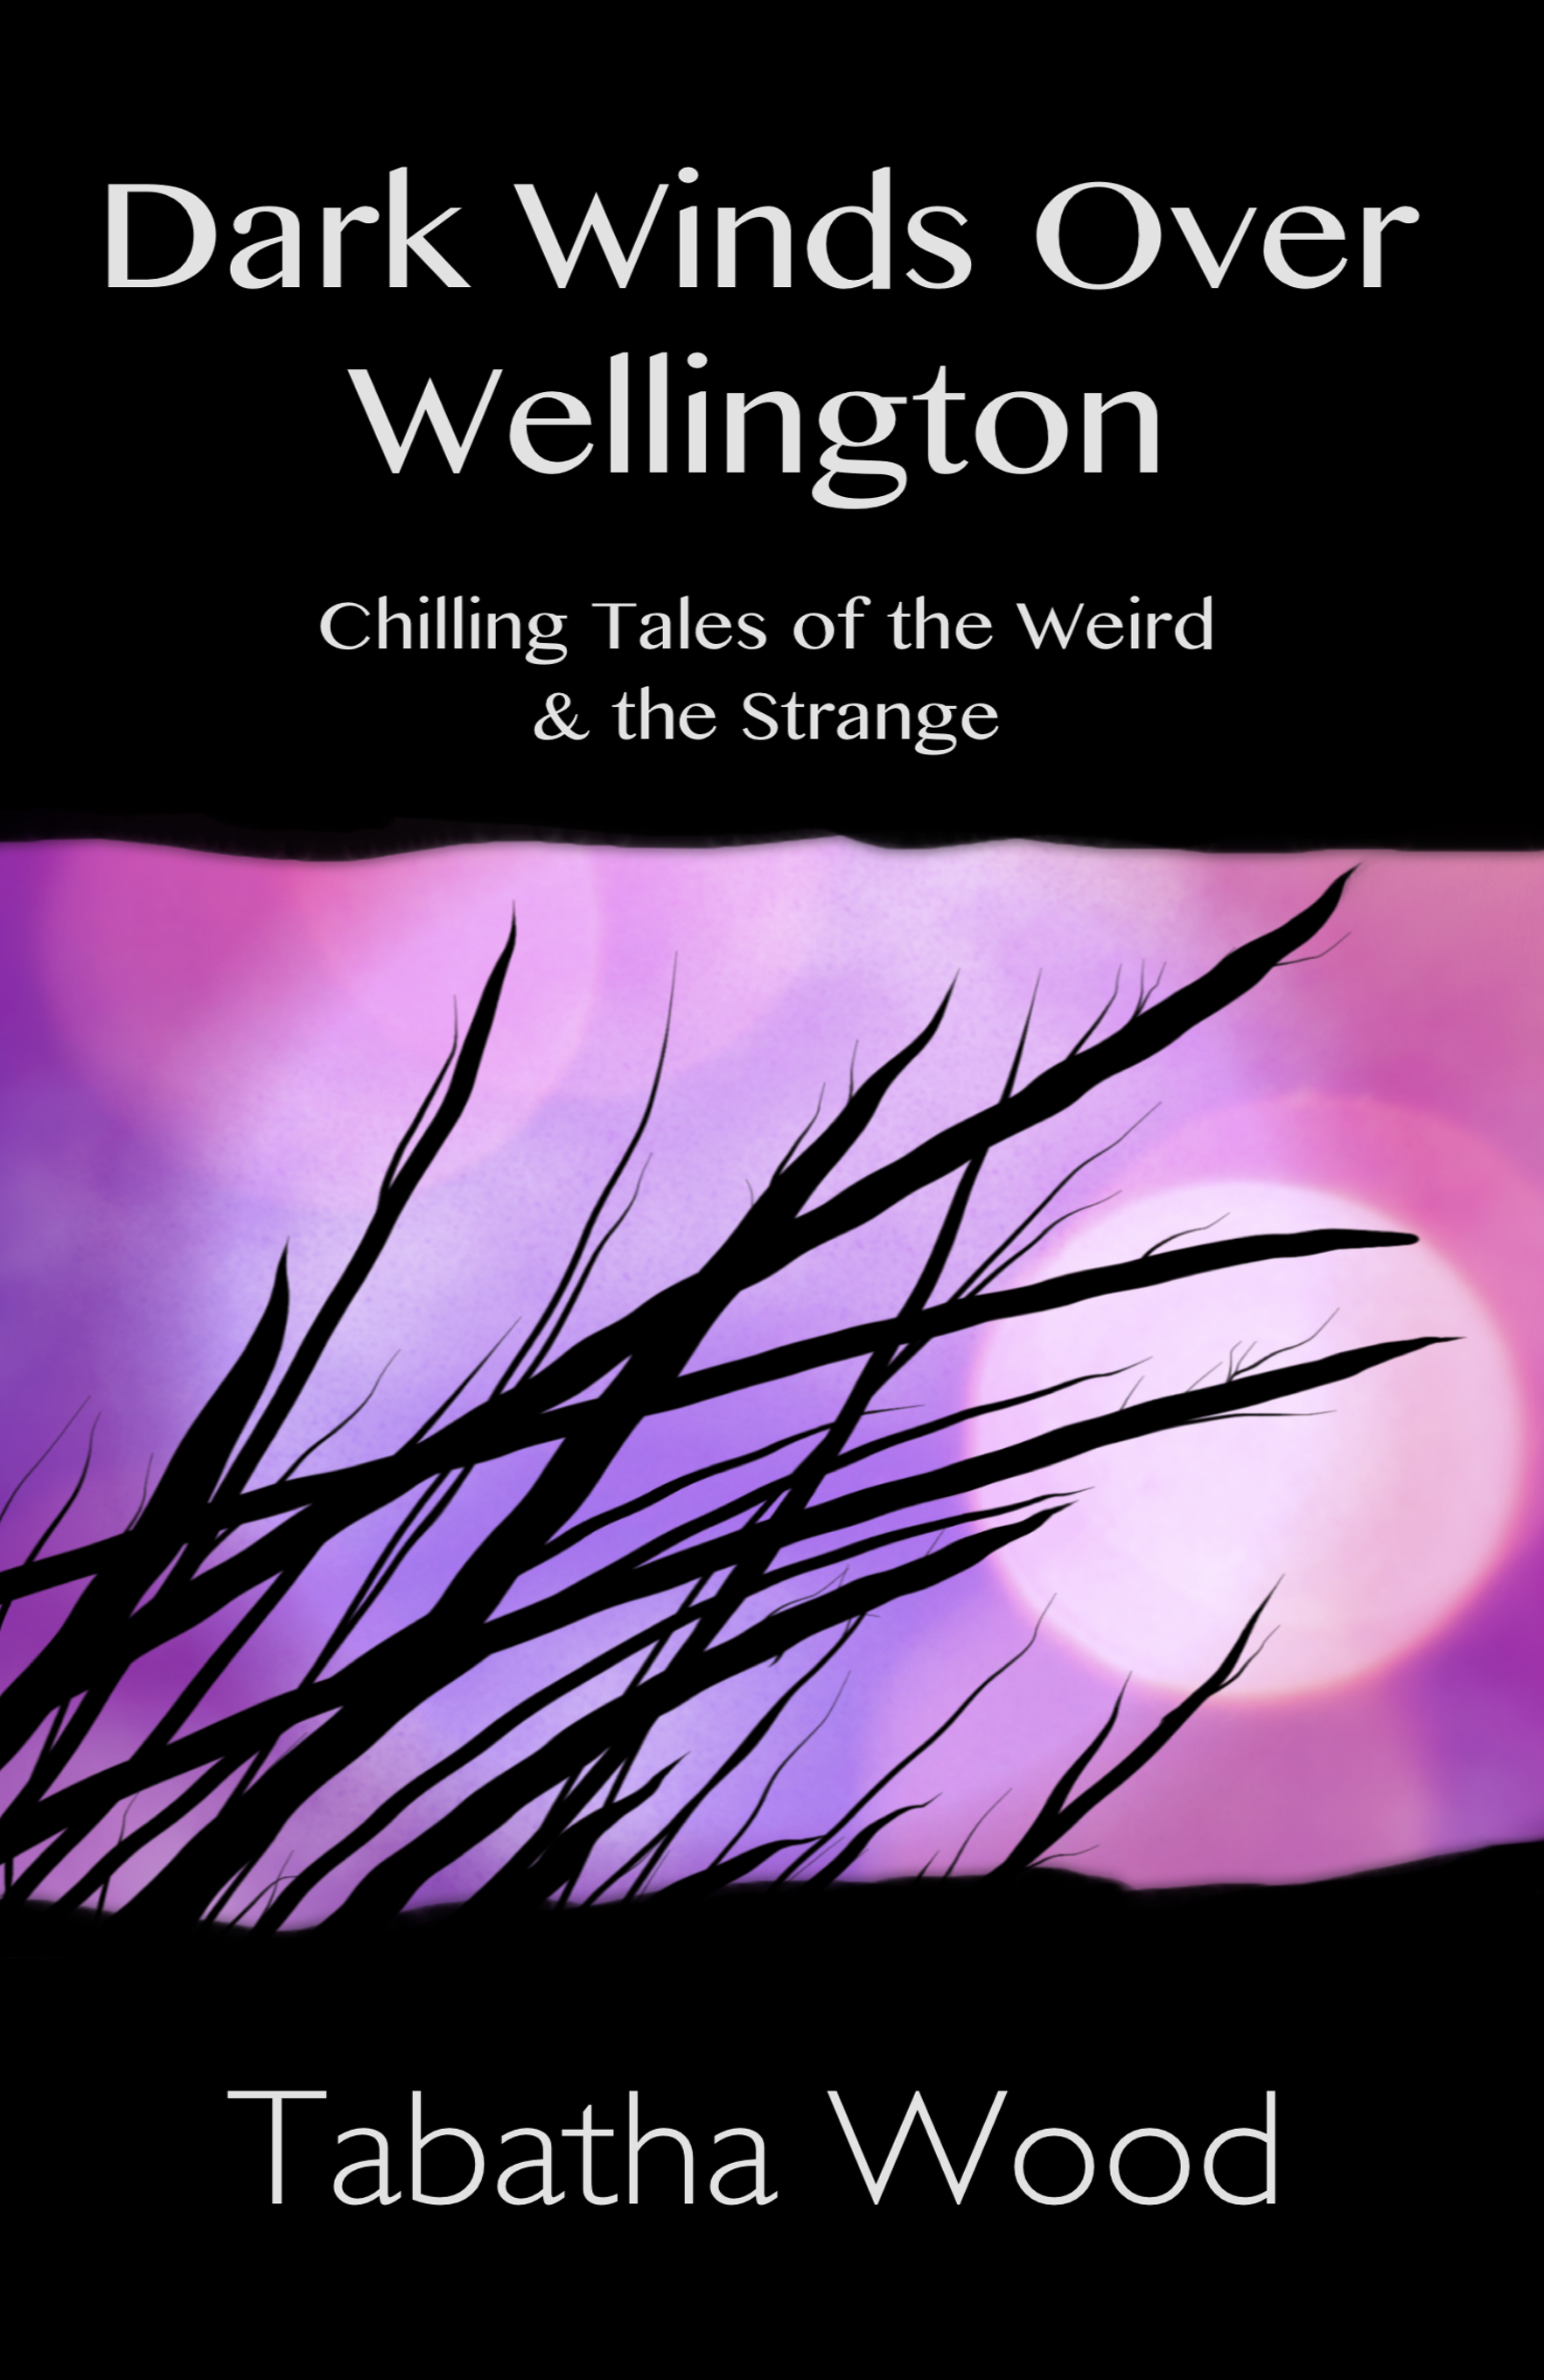 Dark winds over wellington paperback cover